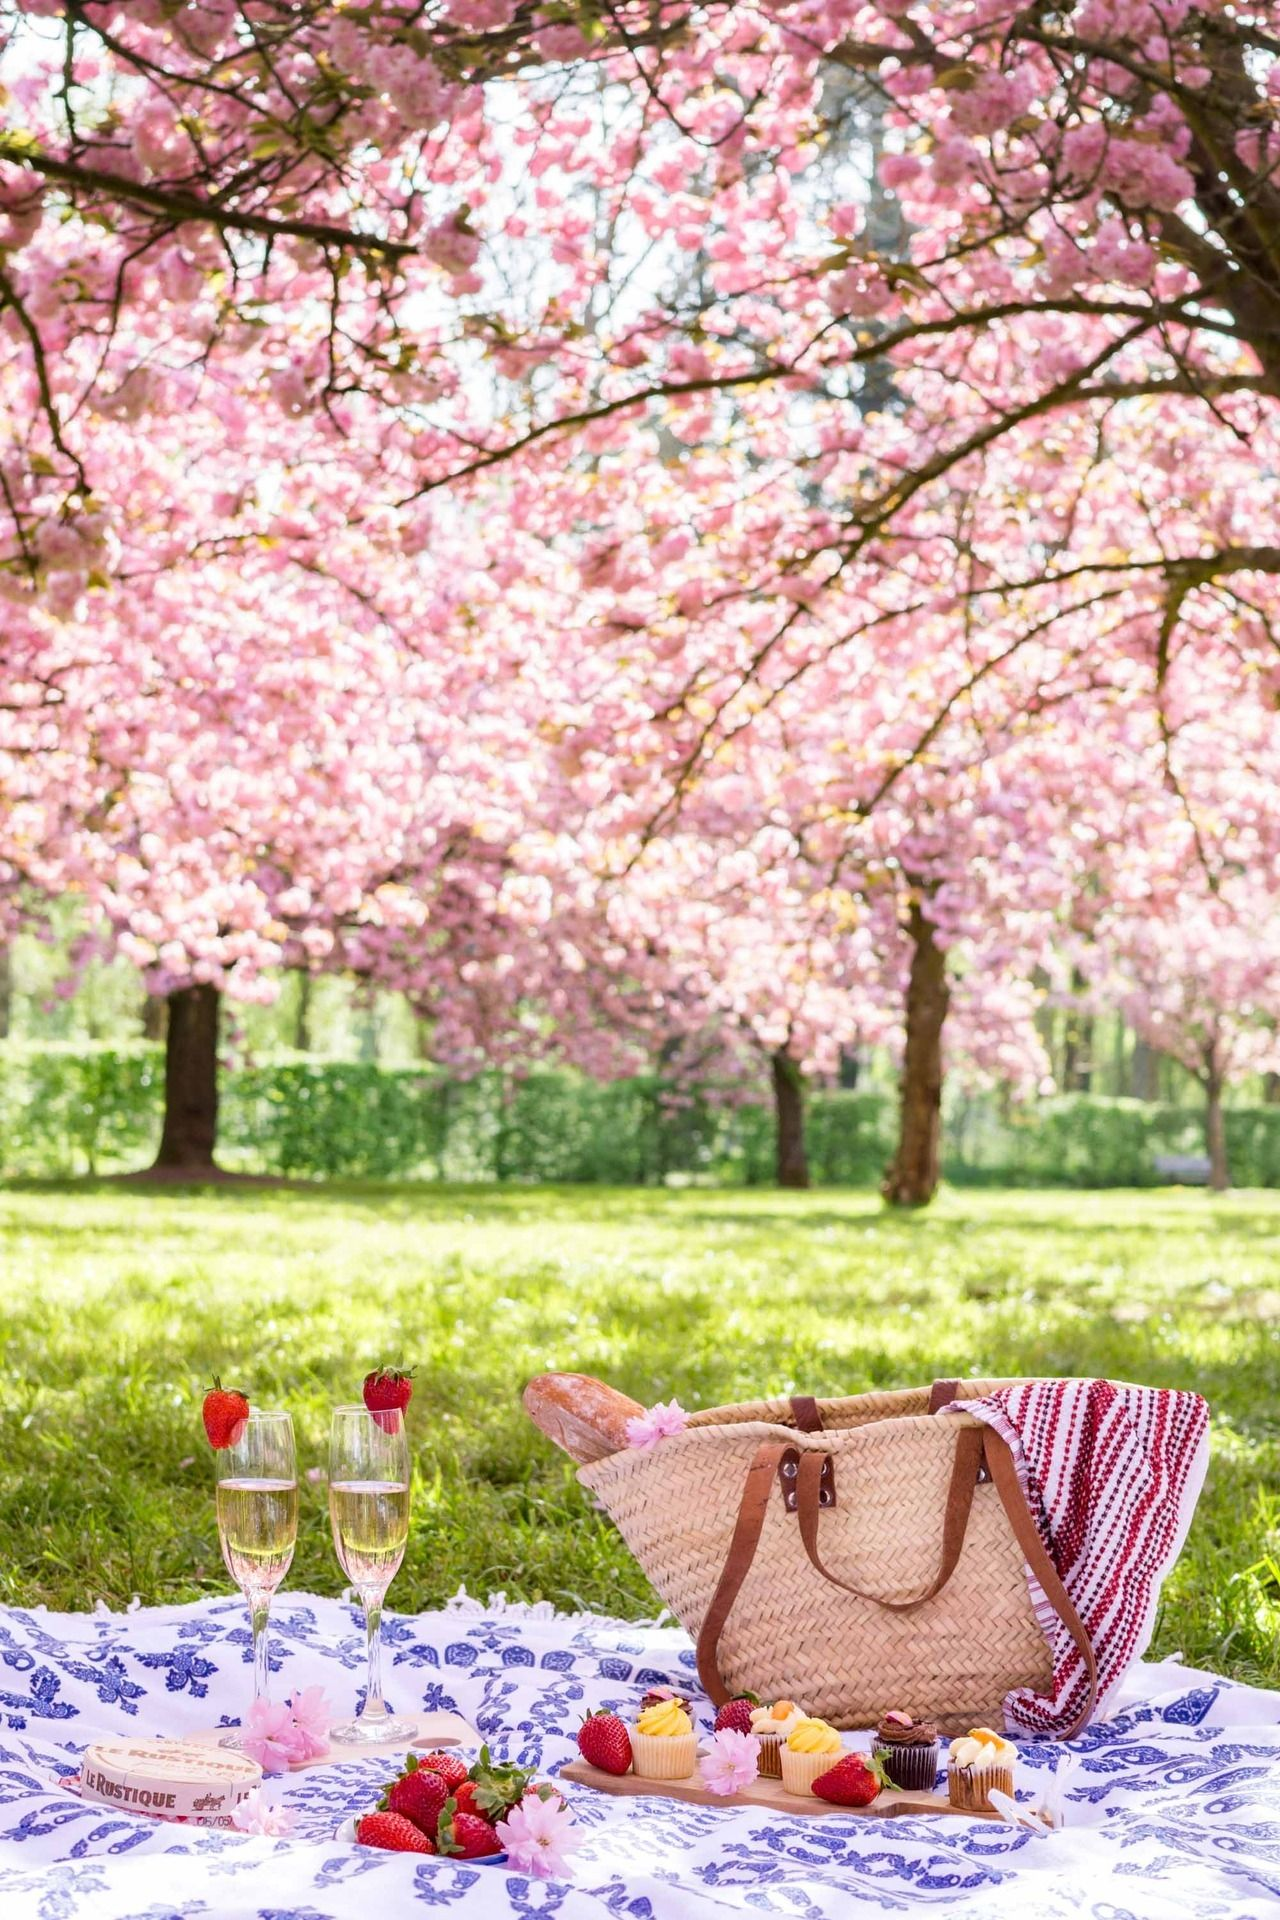 10 Beautiful Places That Are Perfect For A Summer Picnic Cherry Blossom Festival Cherry Blossom Japan Cherry Blossom